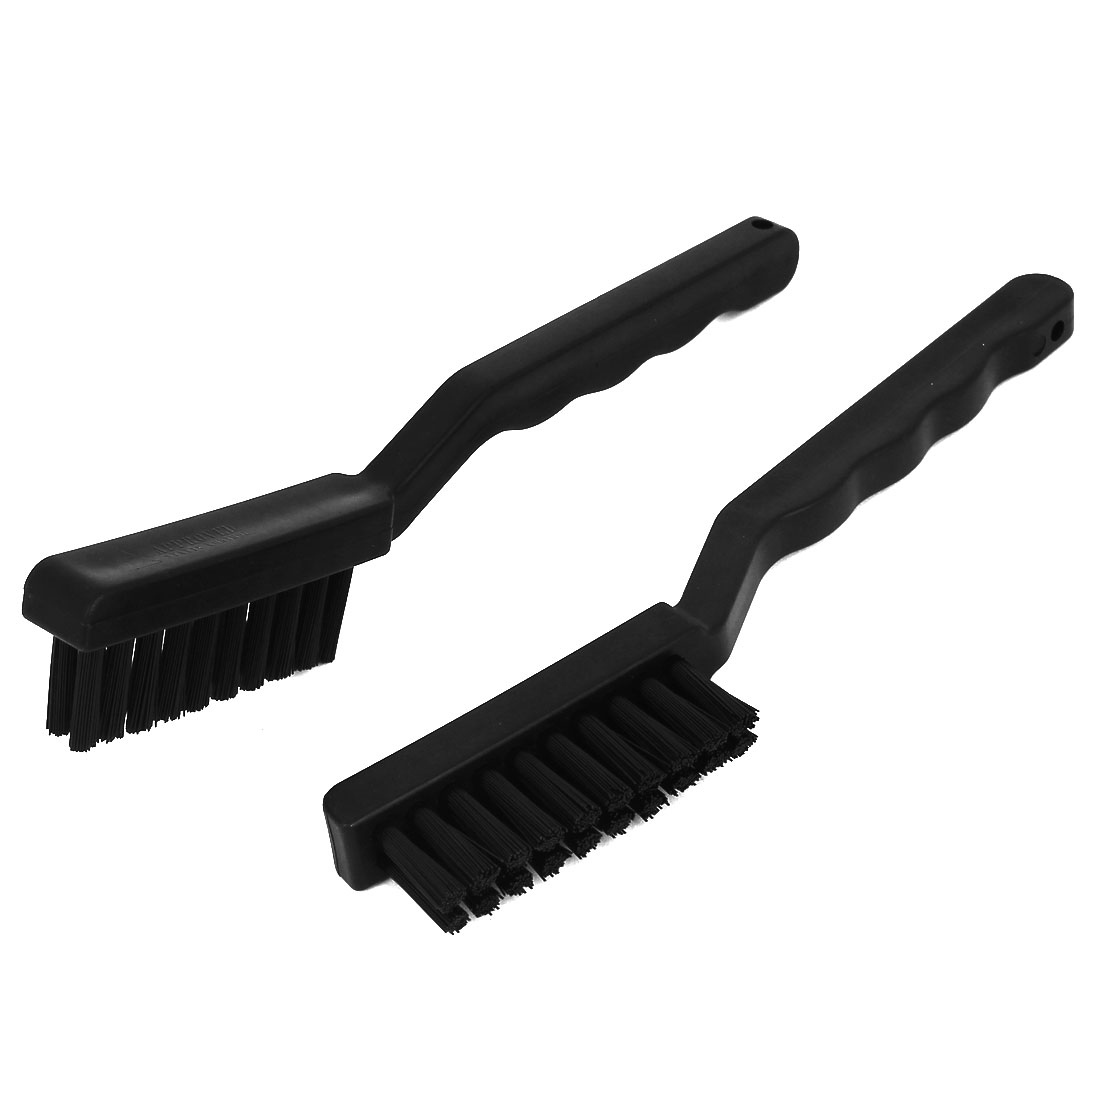 2pcs Anti-static Electronic ESD Anti Static Cleaning Brush 17.5cm for Keyboard